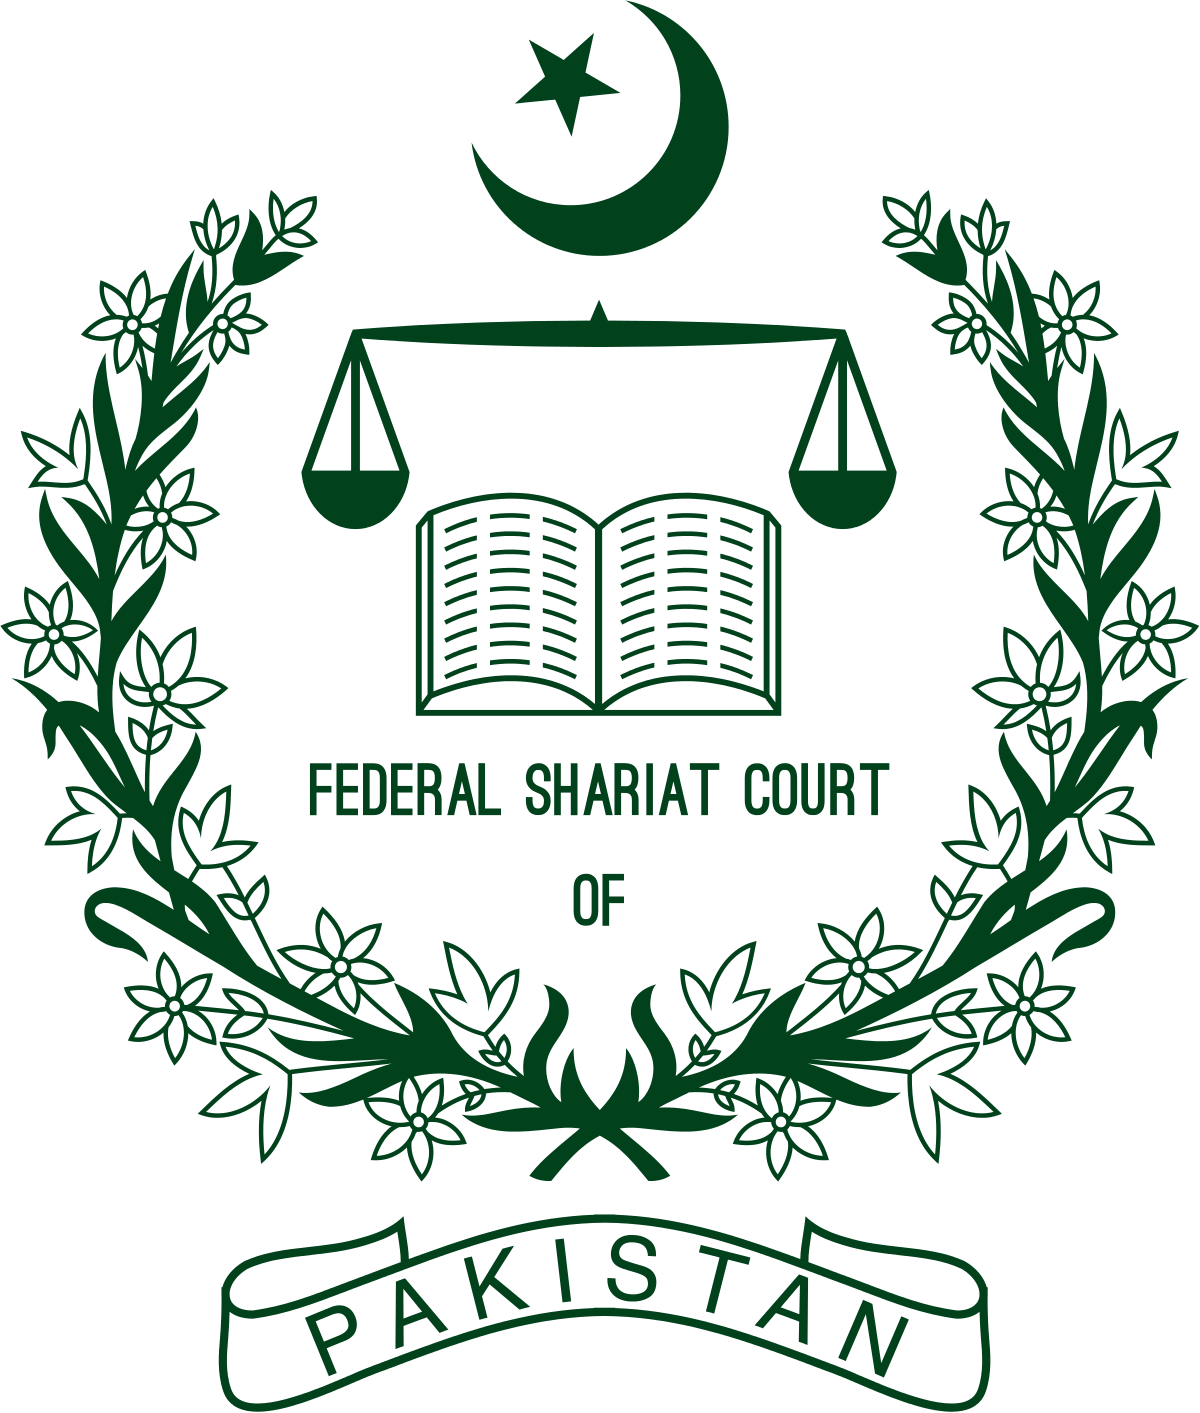 Clipart national court decisions svg freeuse stock Federal Shariat Court - Wikipedia svg freeuse stock